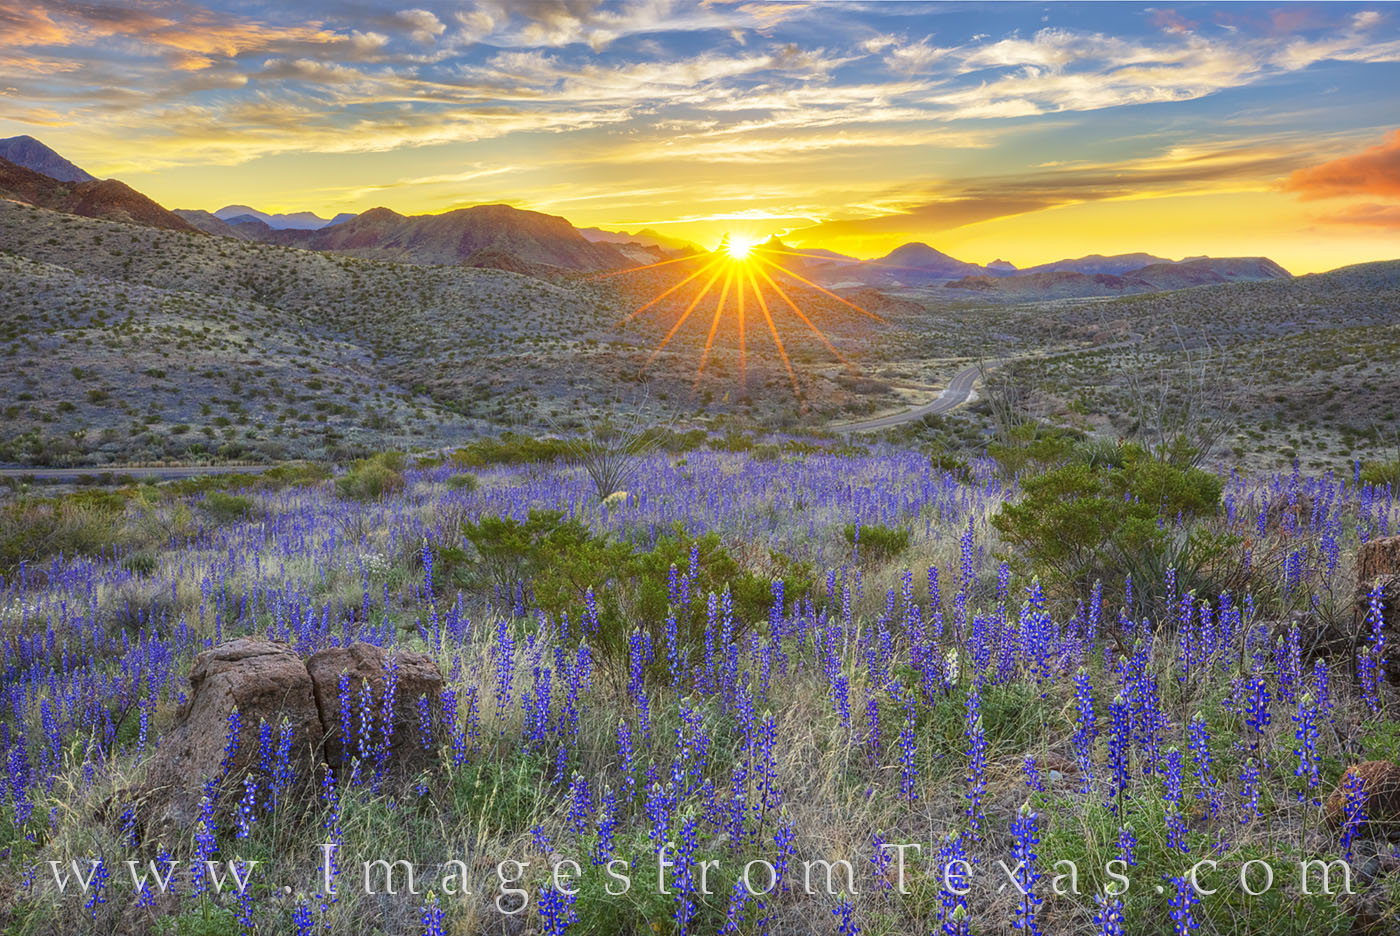 Bluebonnets, big bend, big bend bluebonnets, spring, 2019, mule ears, big bend national park, Texas national parks, desert bloom, Texas wildflowers, west Texas, desert wildflowers, chisos mountains, c, photo